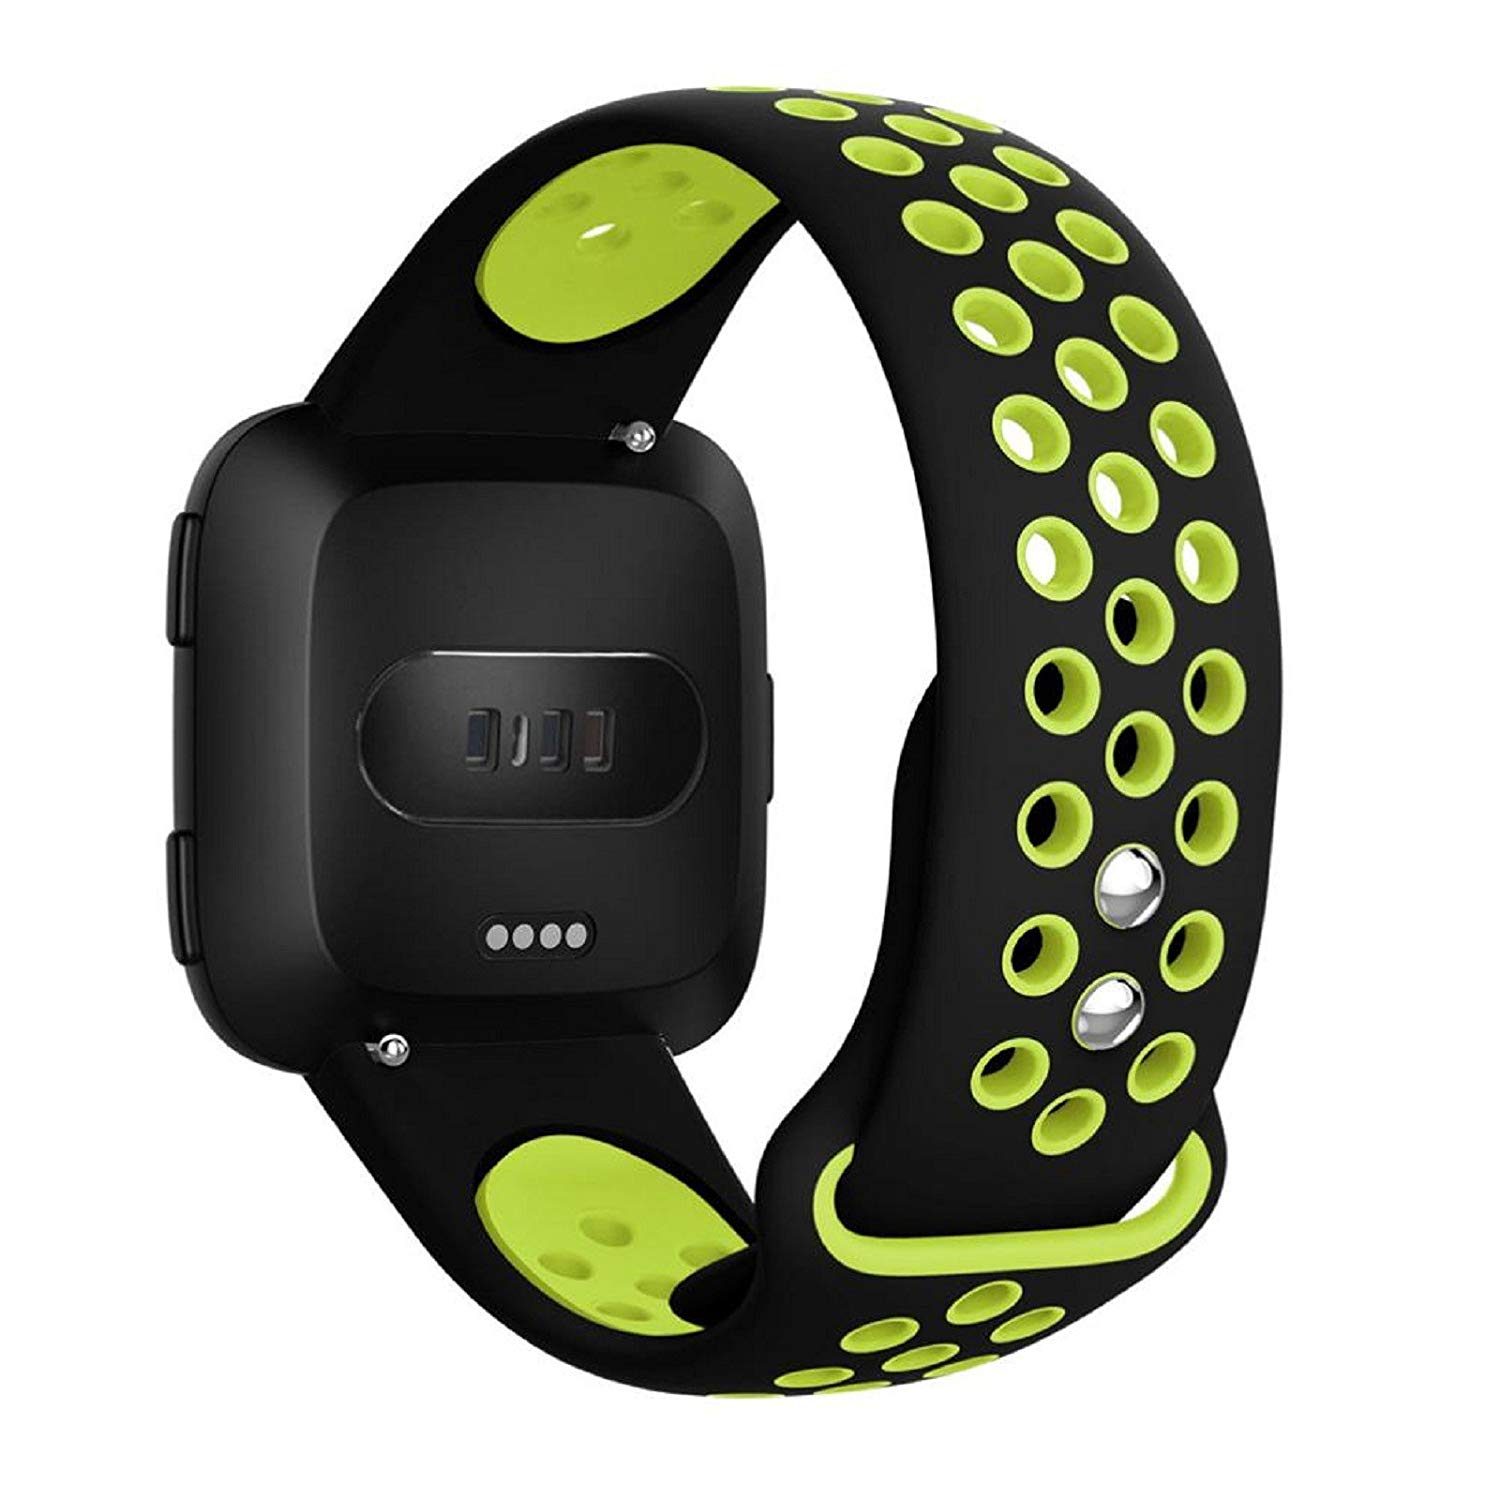 Owill Durable Lightweight Replacement Ventilate Holes Soft Silicone Sports Strap For Fitbit Versa, Band Length: 140+98MM (Black)